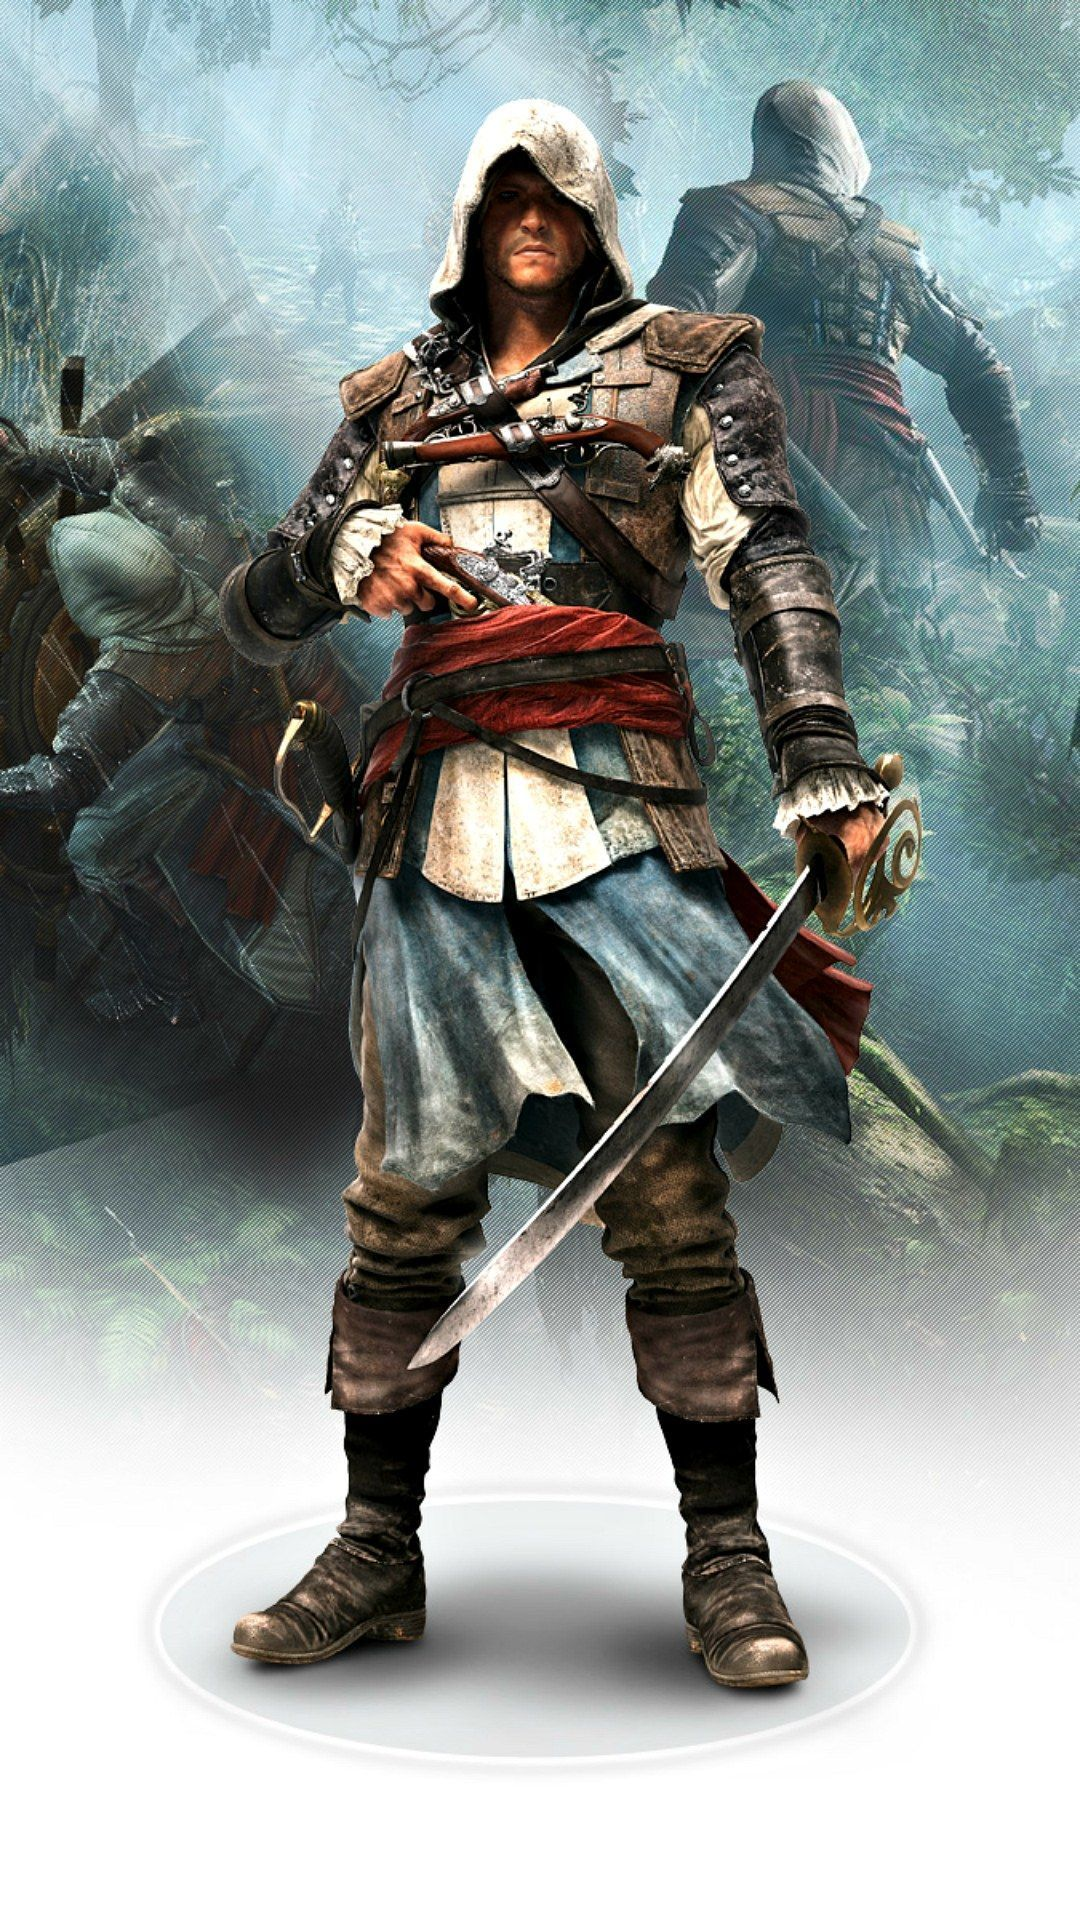 Hd wallpapers for mobile 1080x1920 - Assassins Creed Hd Wallpapers For Mobile 1080x1920 Hd Wallpaper Wide